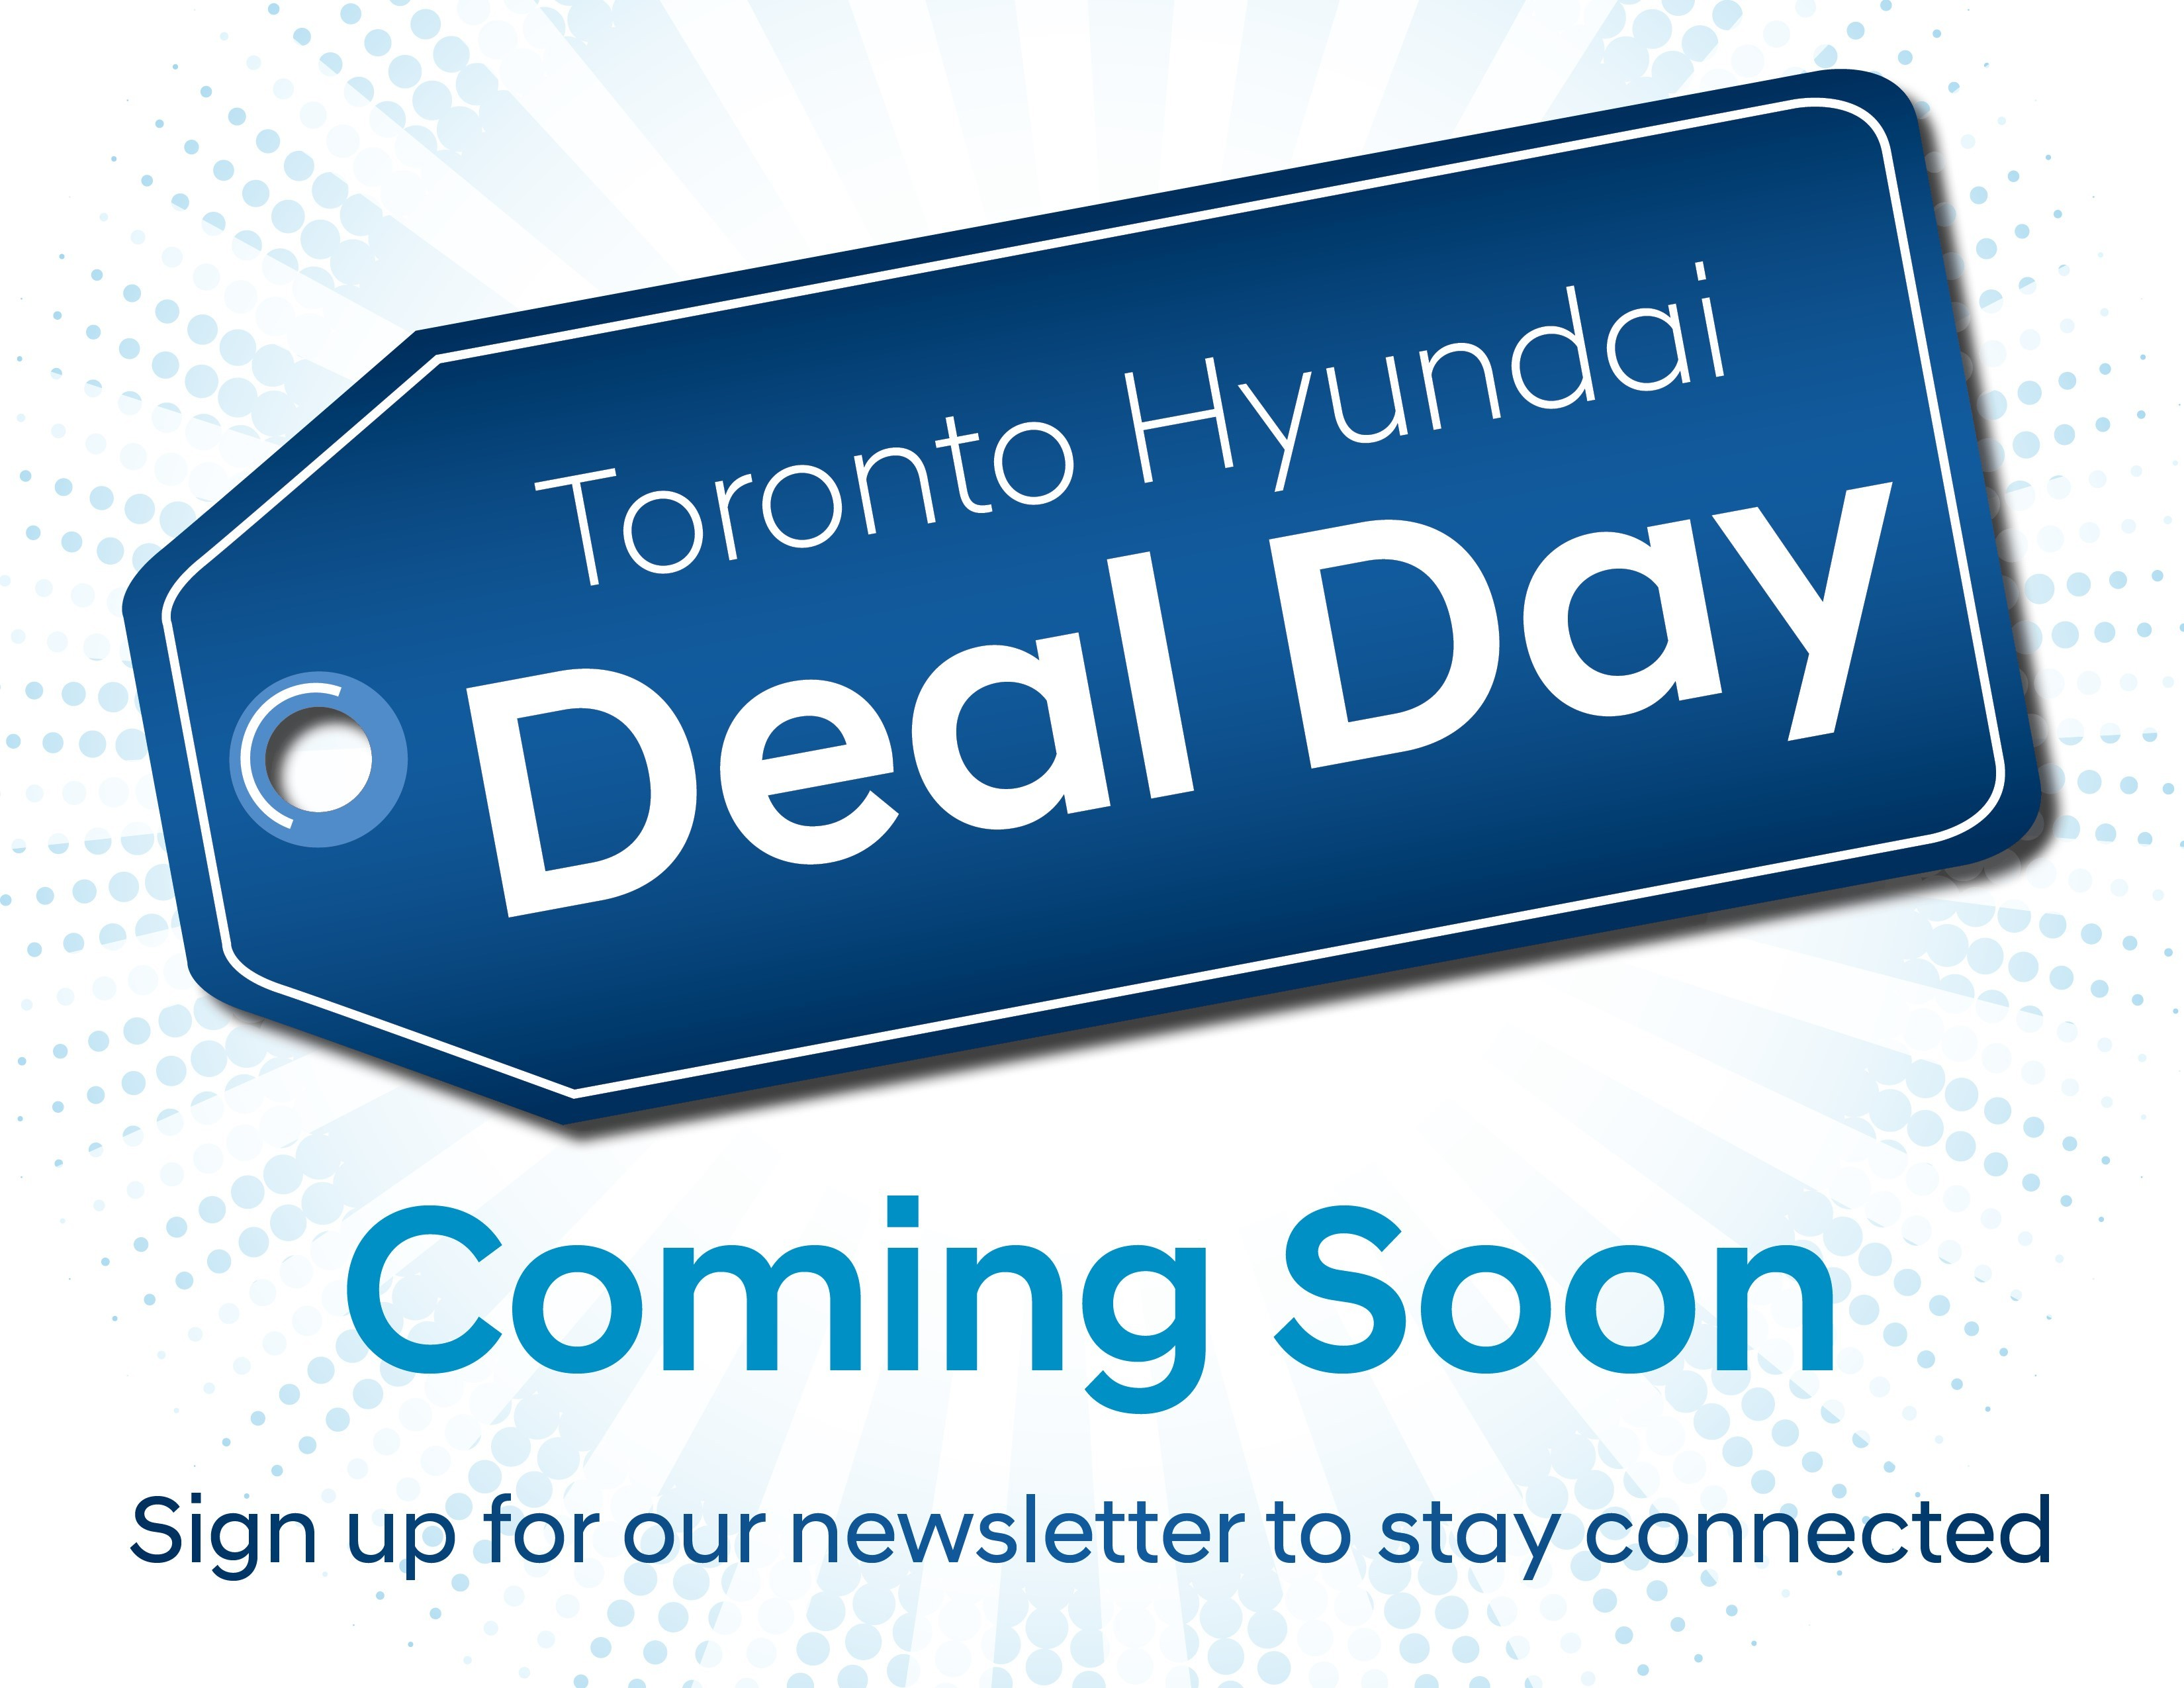 Deal Day coming soon